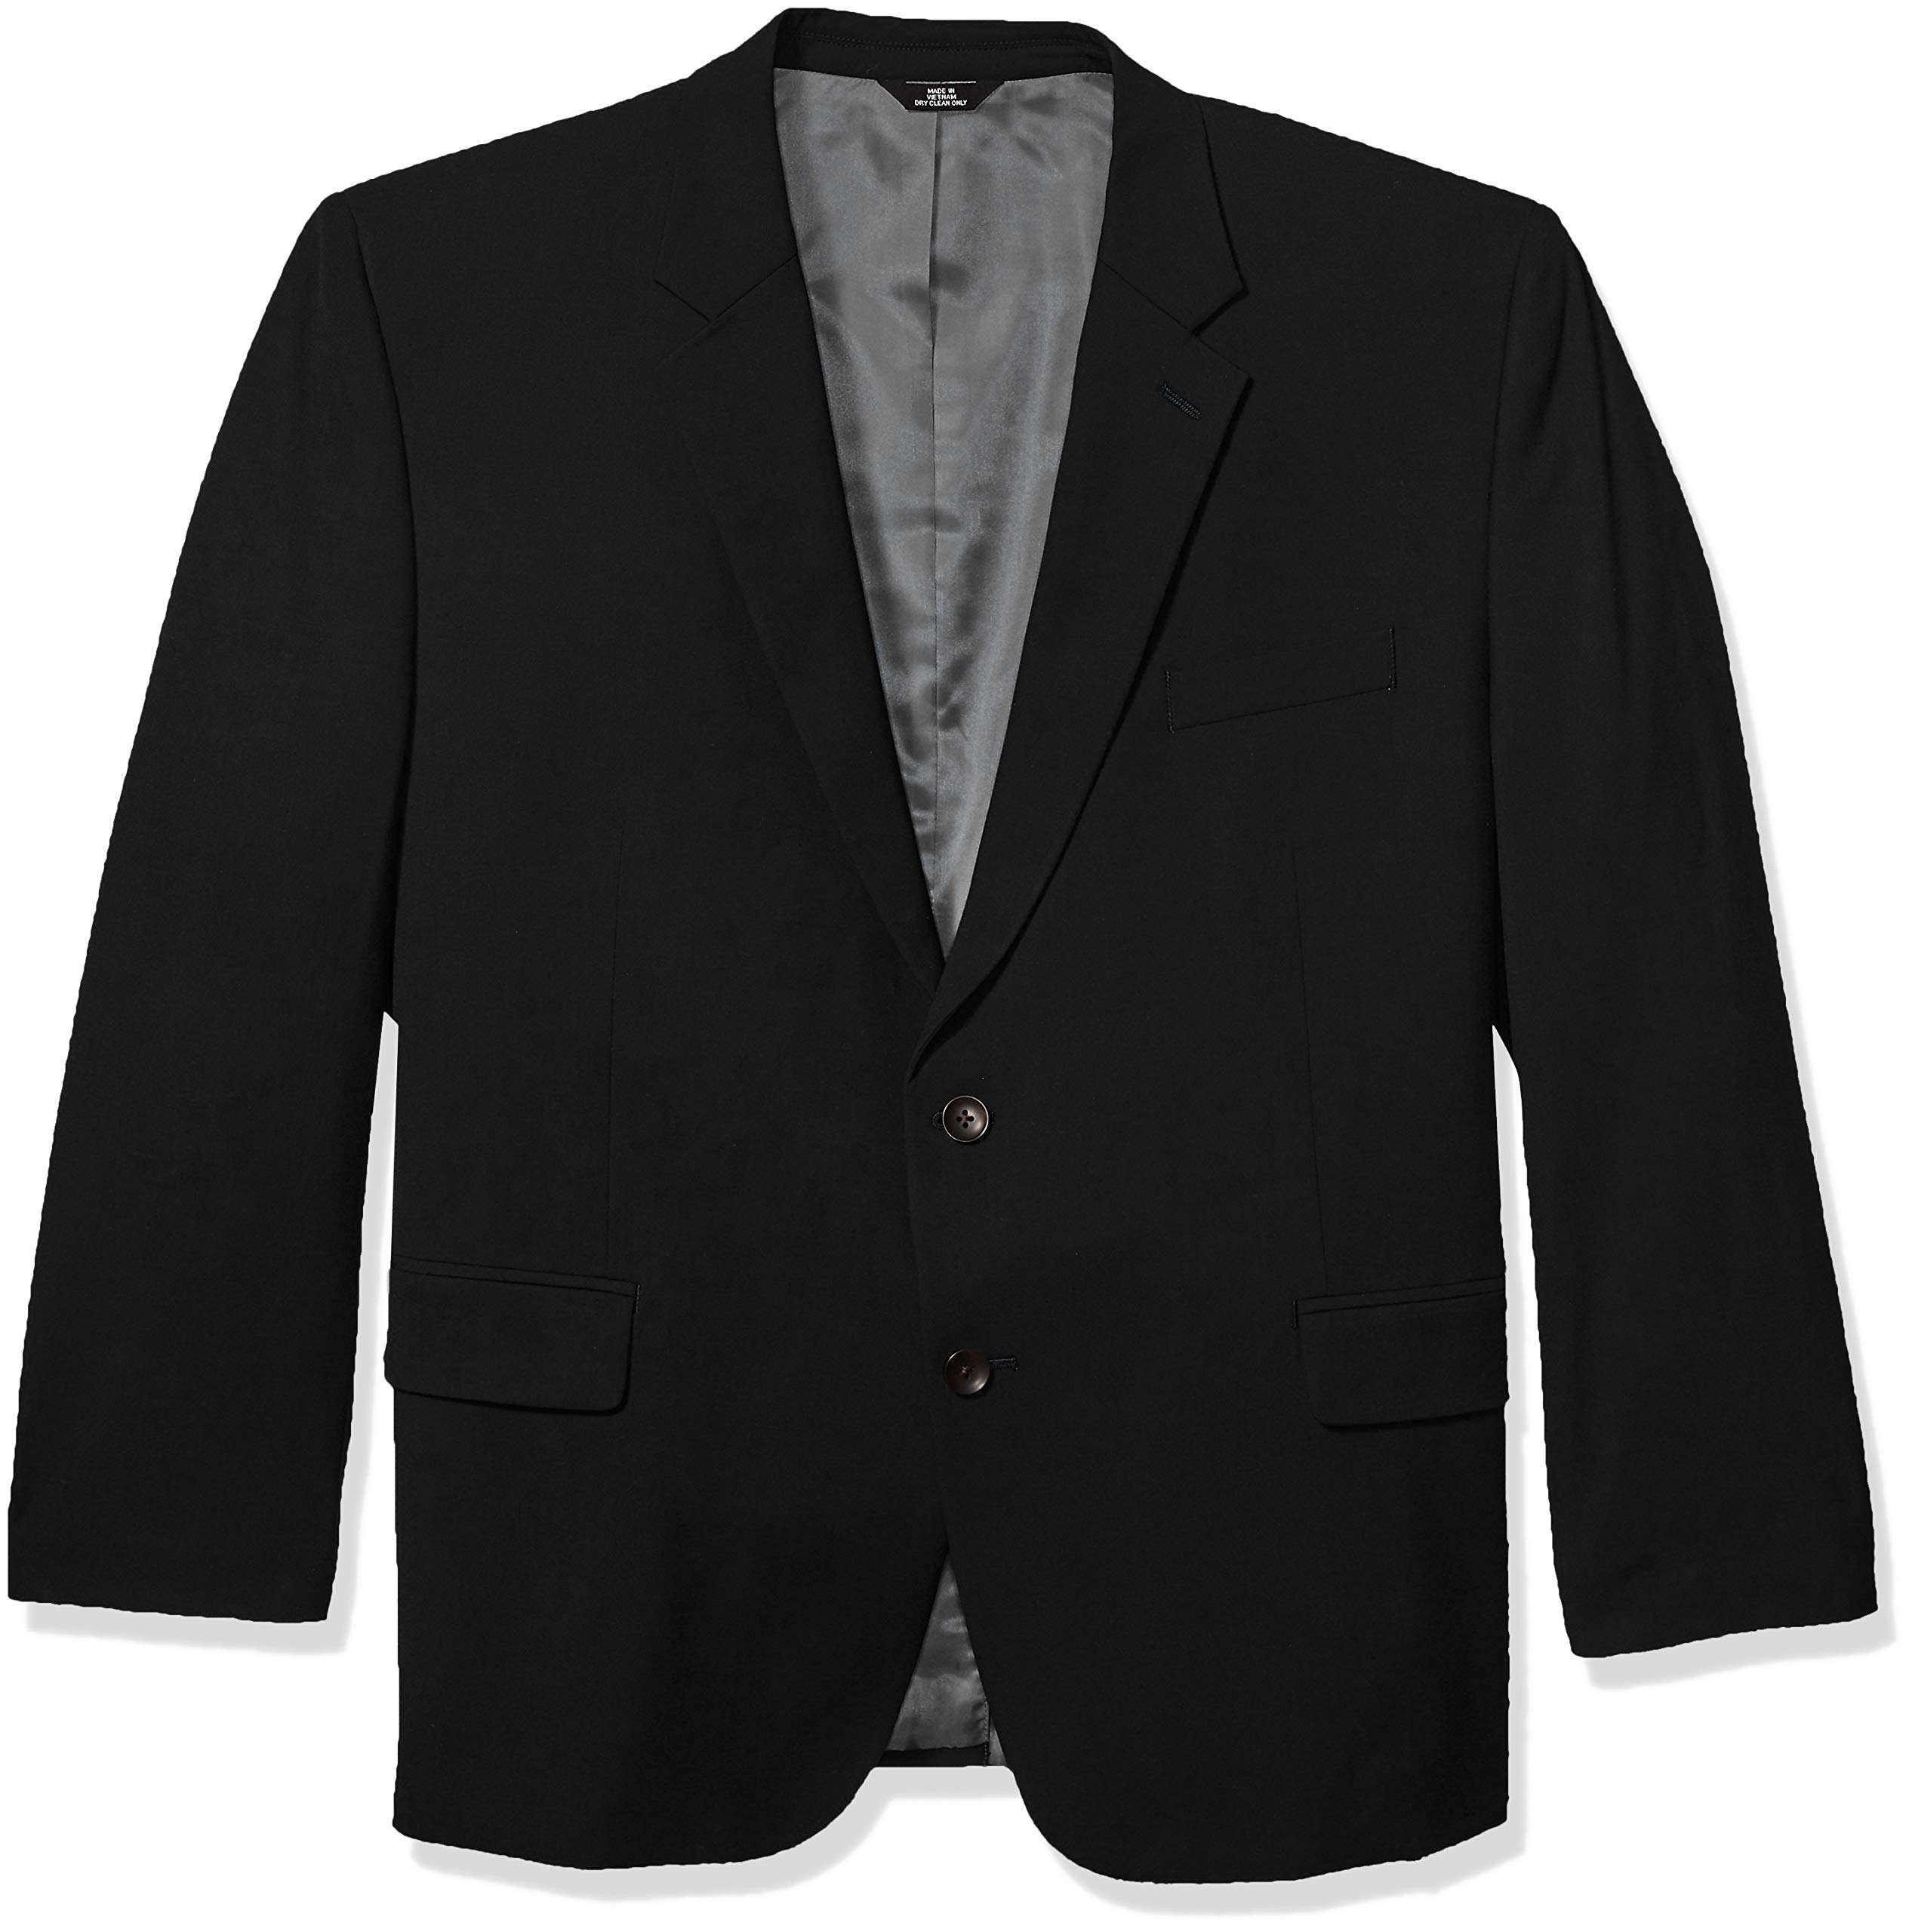 J.M. Haggar Men's Big and Tall B&T 4-Way Stretch Solid Gab Slim Fit Suit Separate Coat, Black, 50S by J.M. Haggar